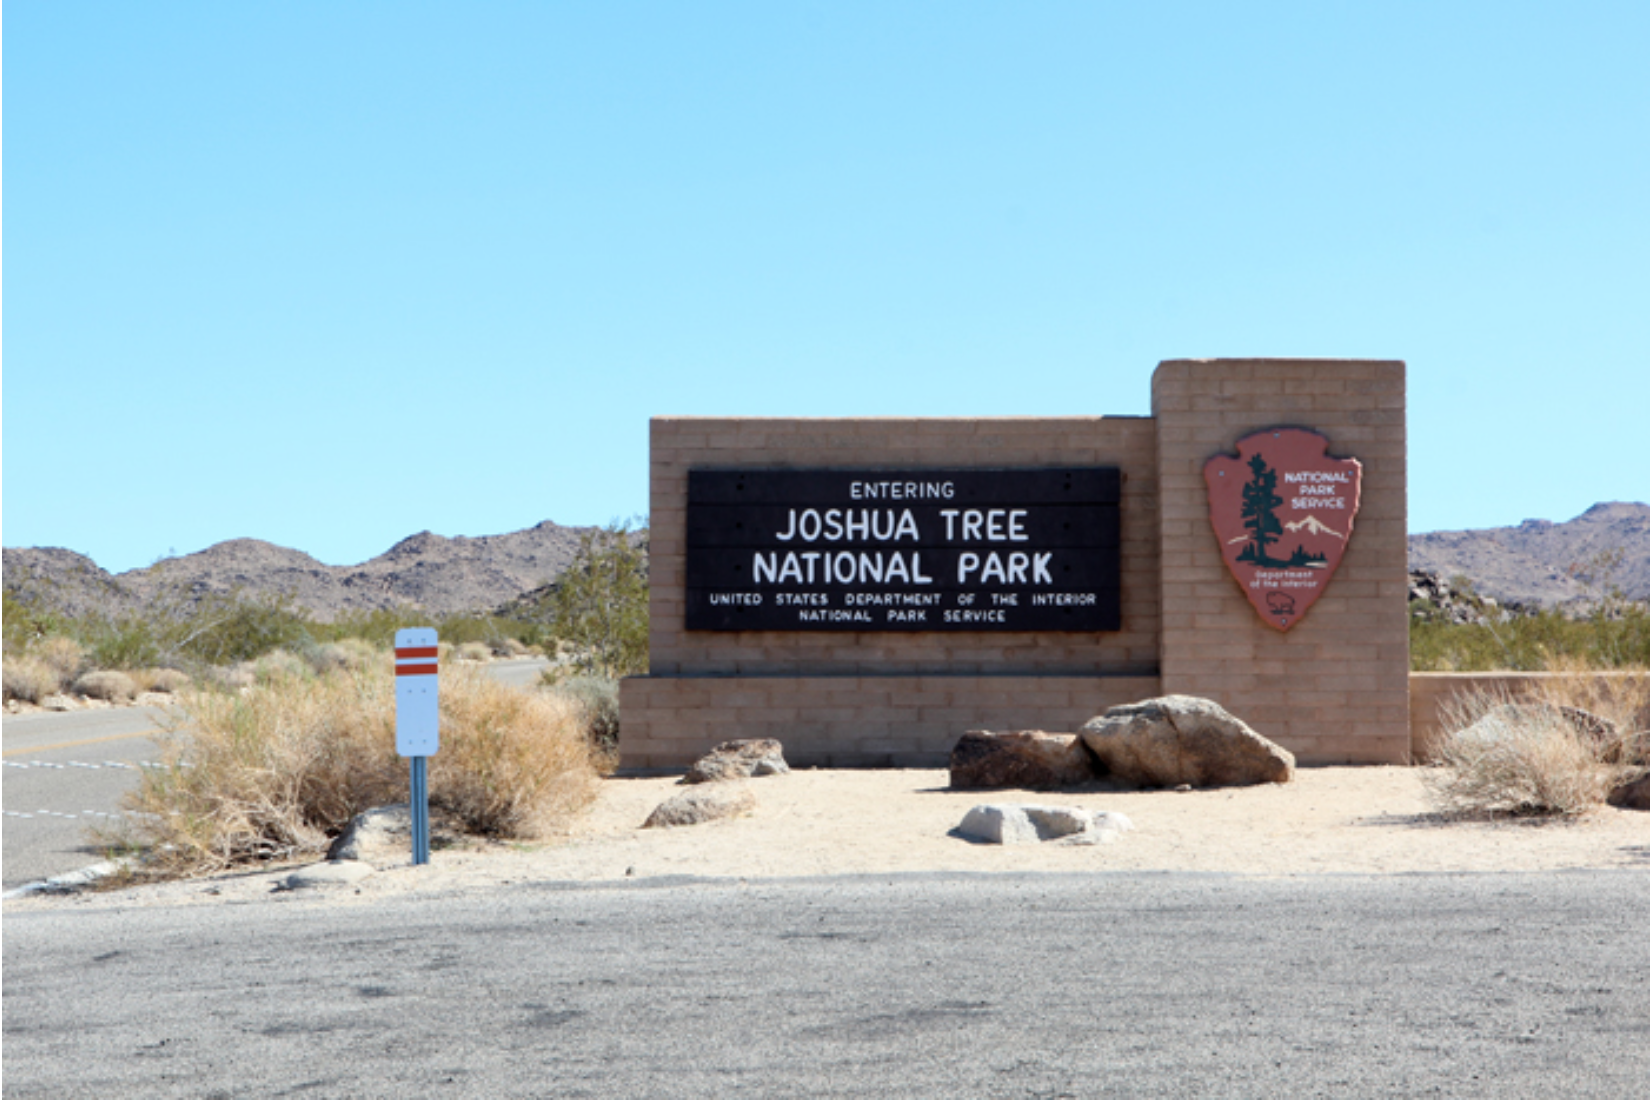 Nationalpark Joshua Tree deutsch